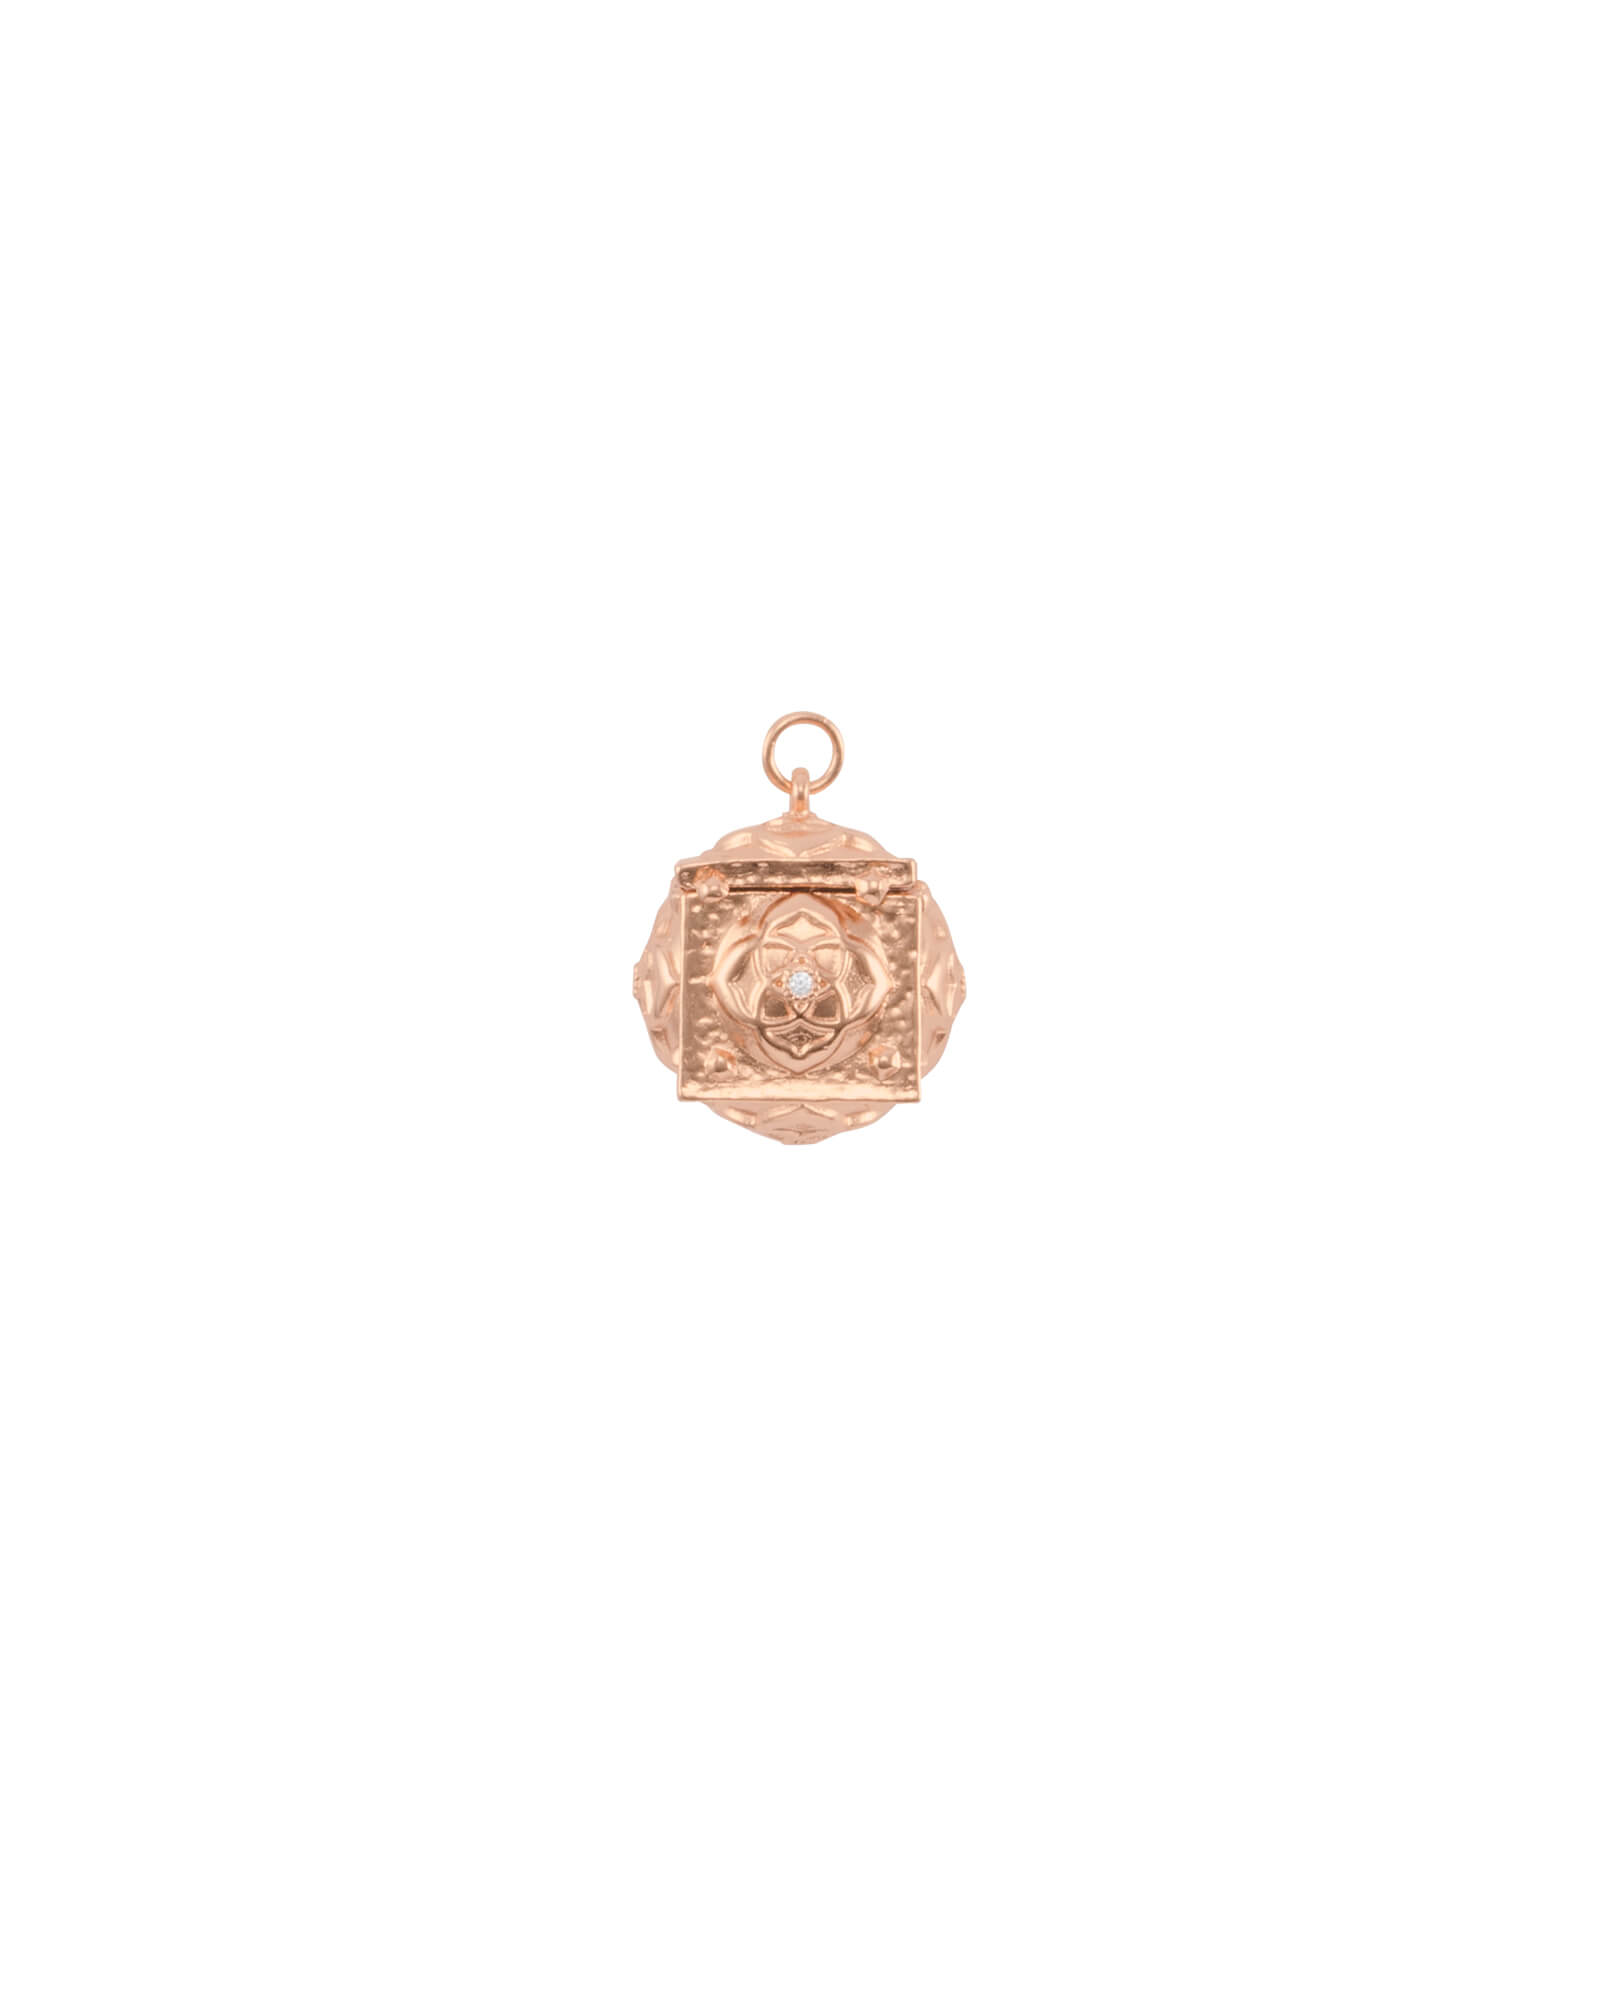 Keepsake Pendant Charm in Rose Gold